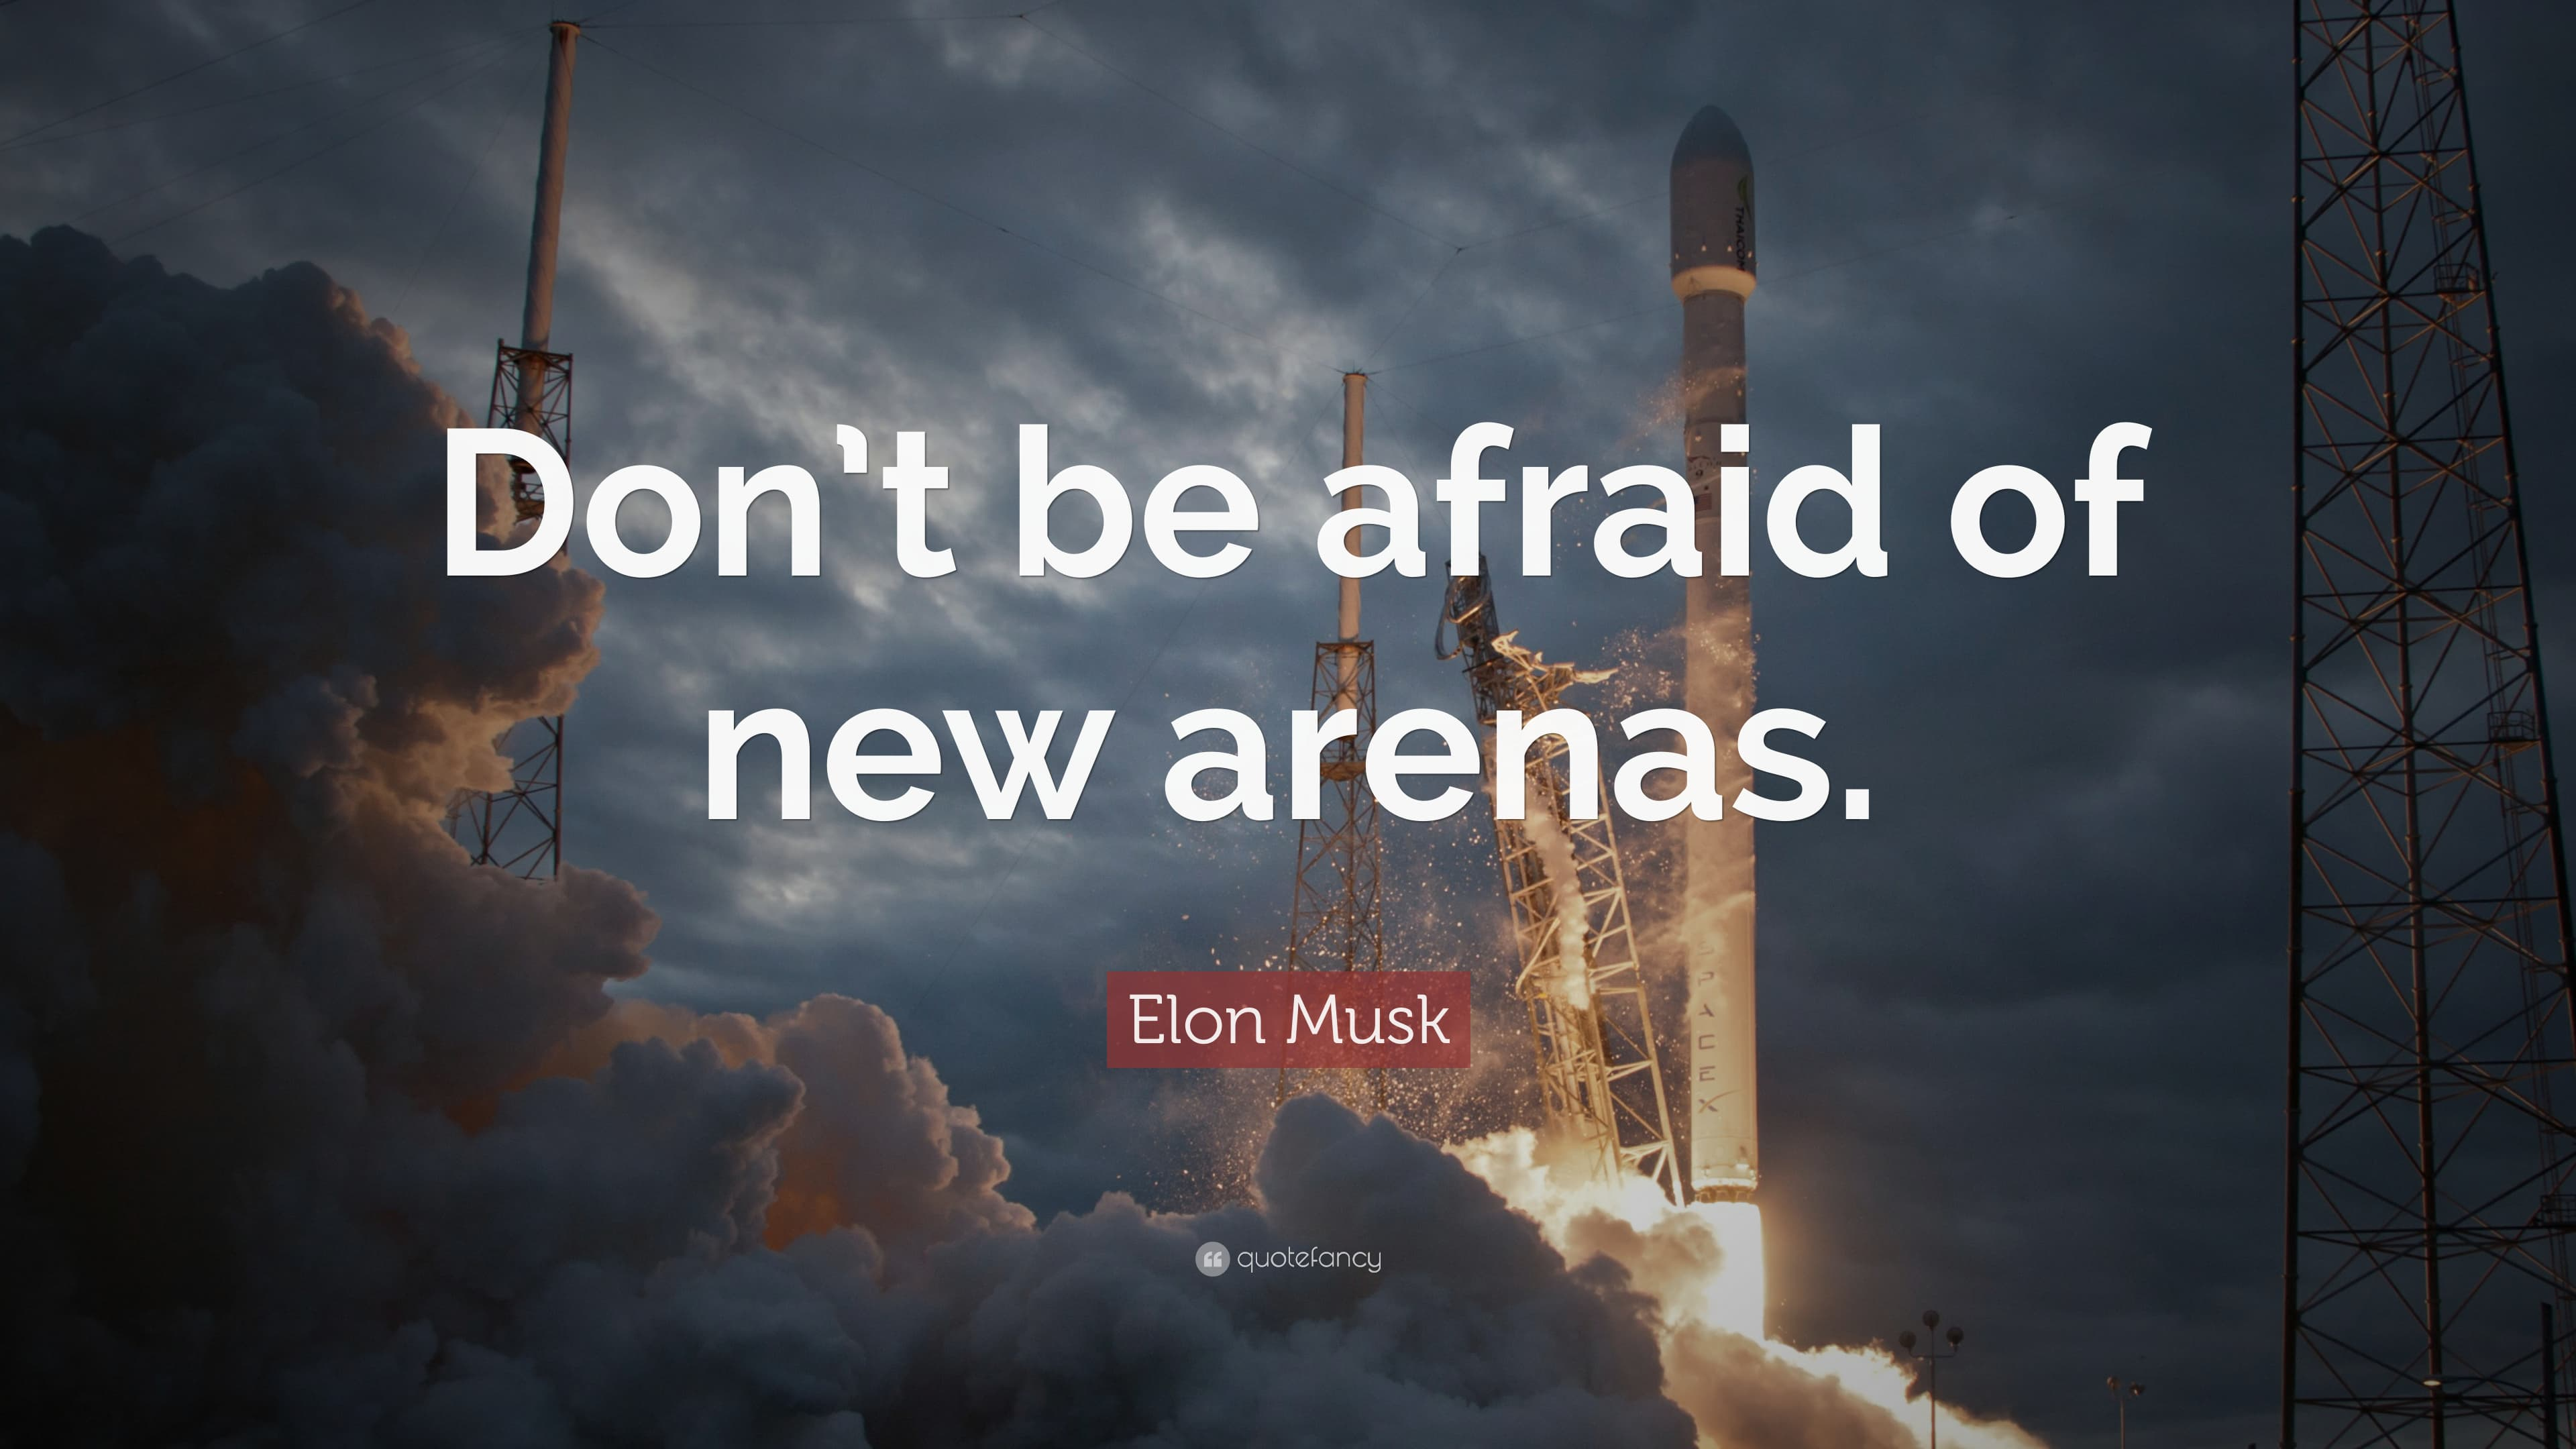 Minimum Awesome Product - Elon Musk - Don't be afraid of new arenas